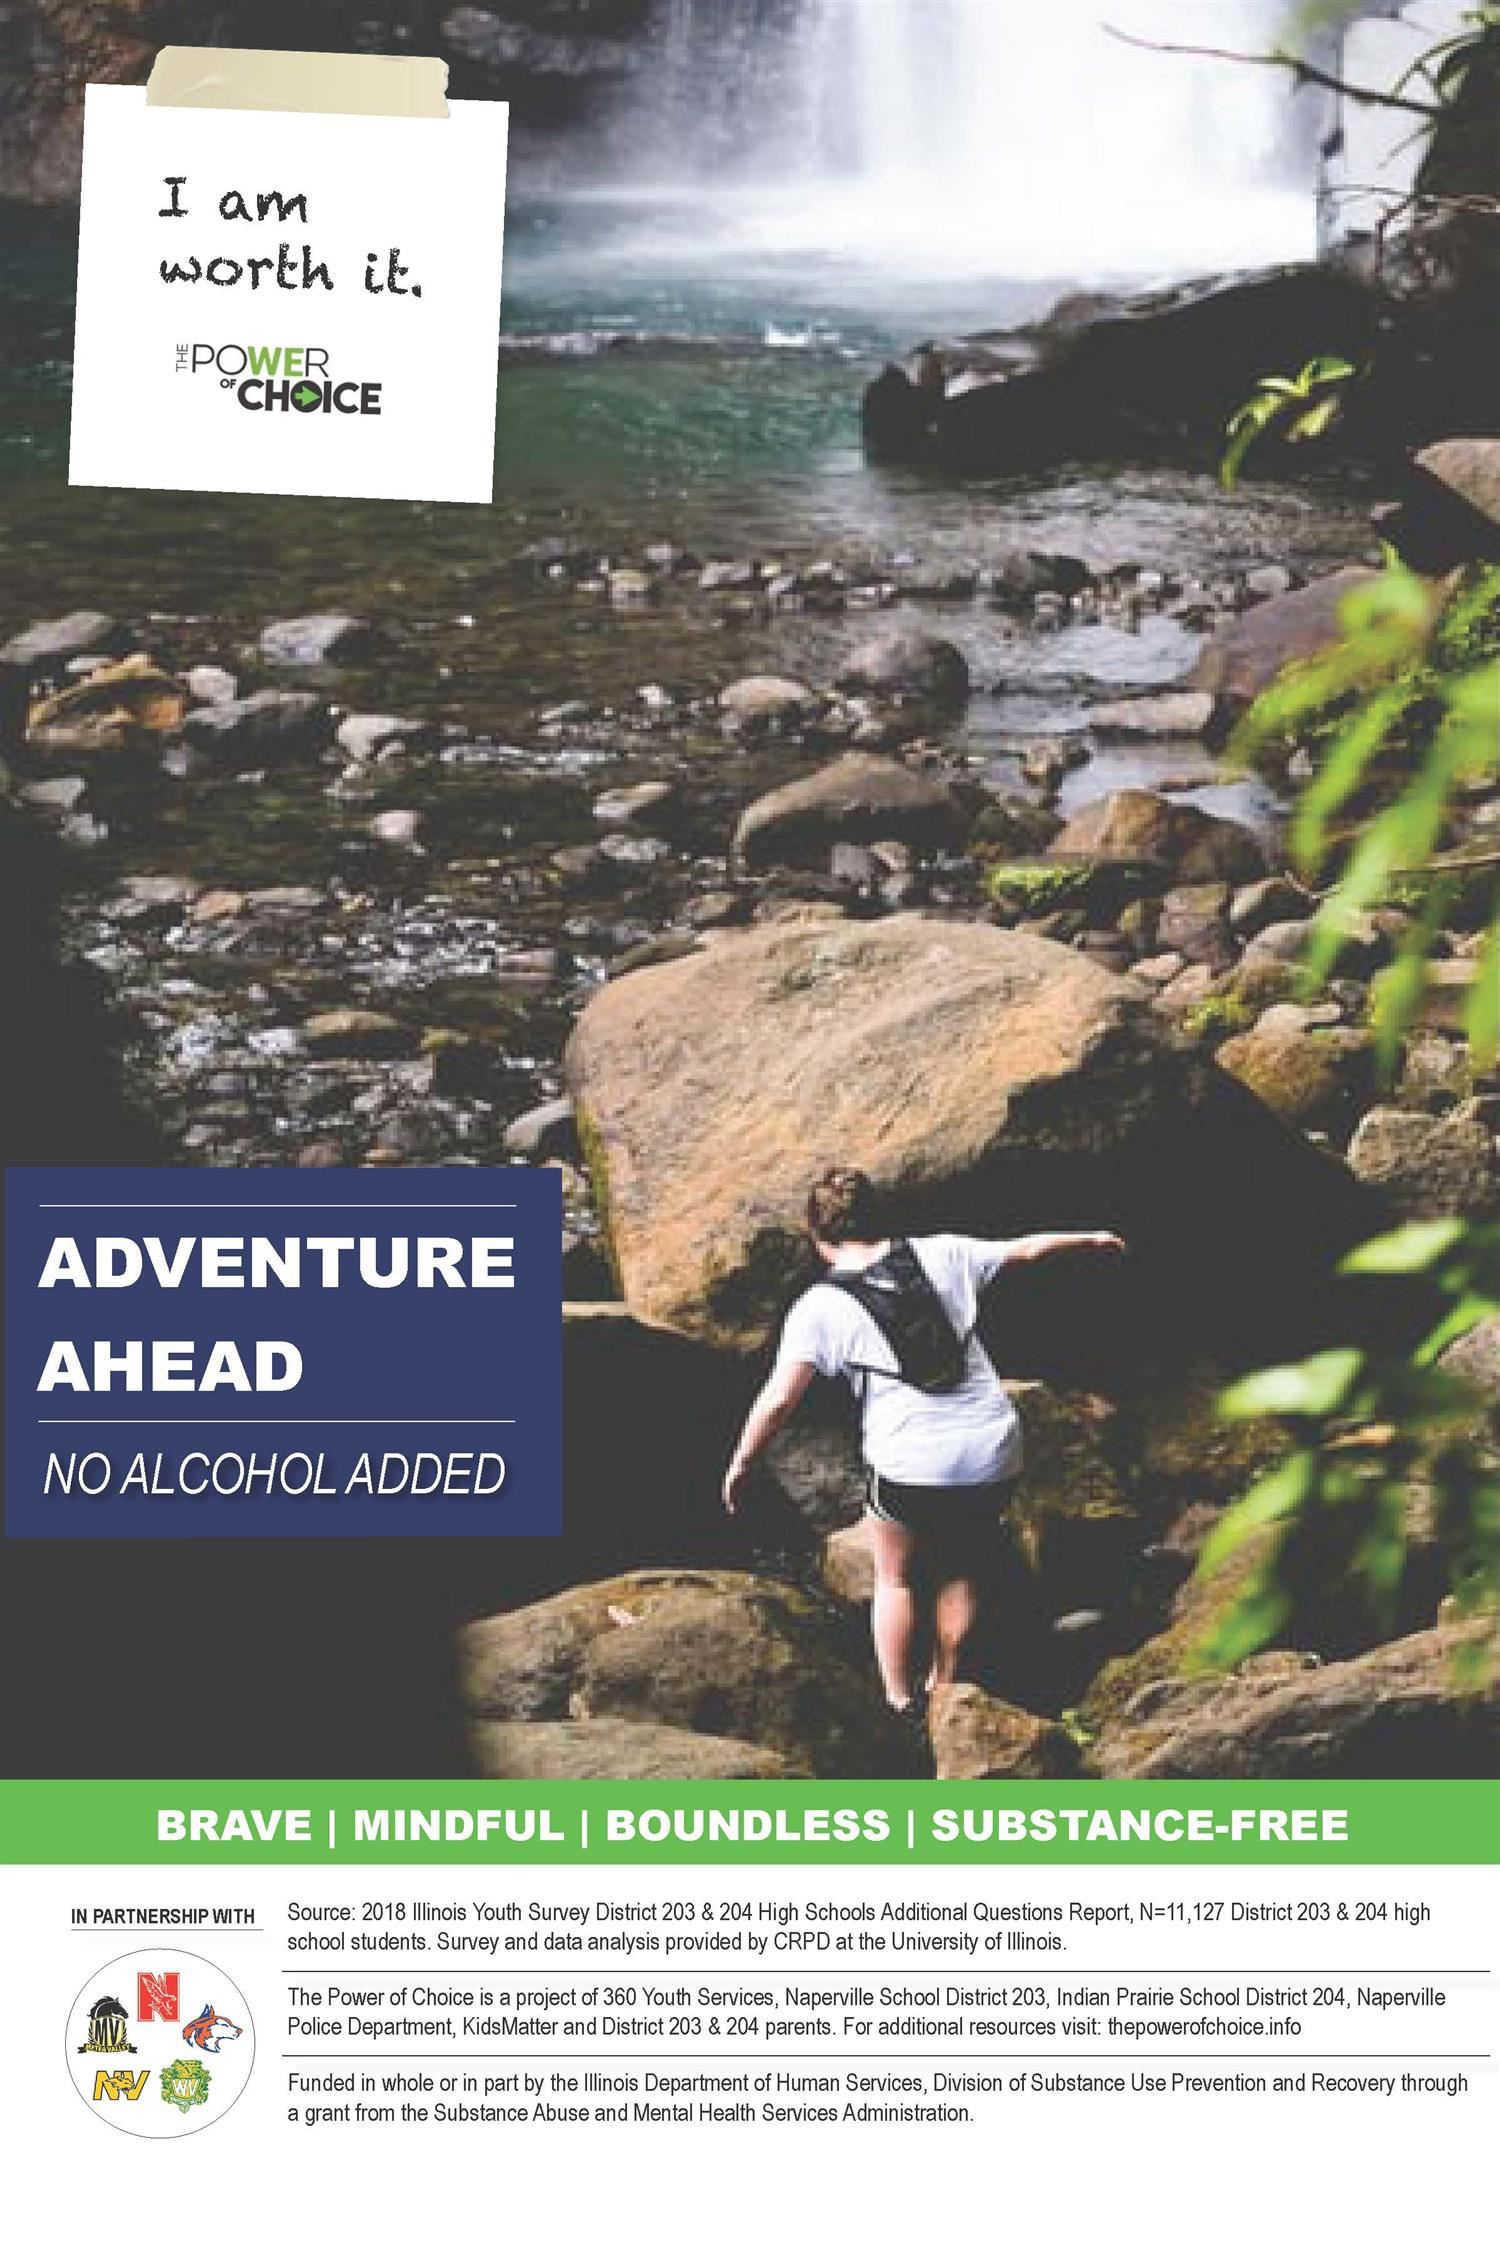 Adventure ahead: No alcohol added